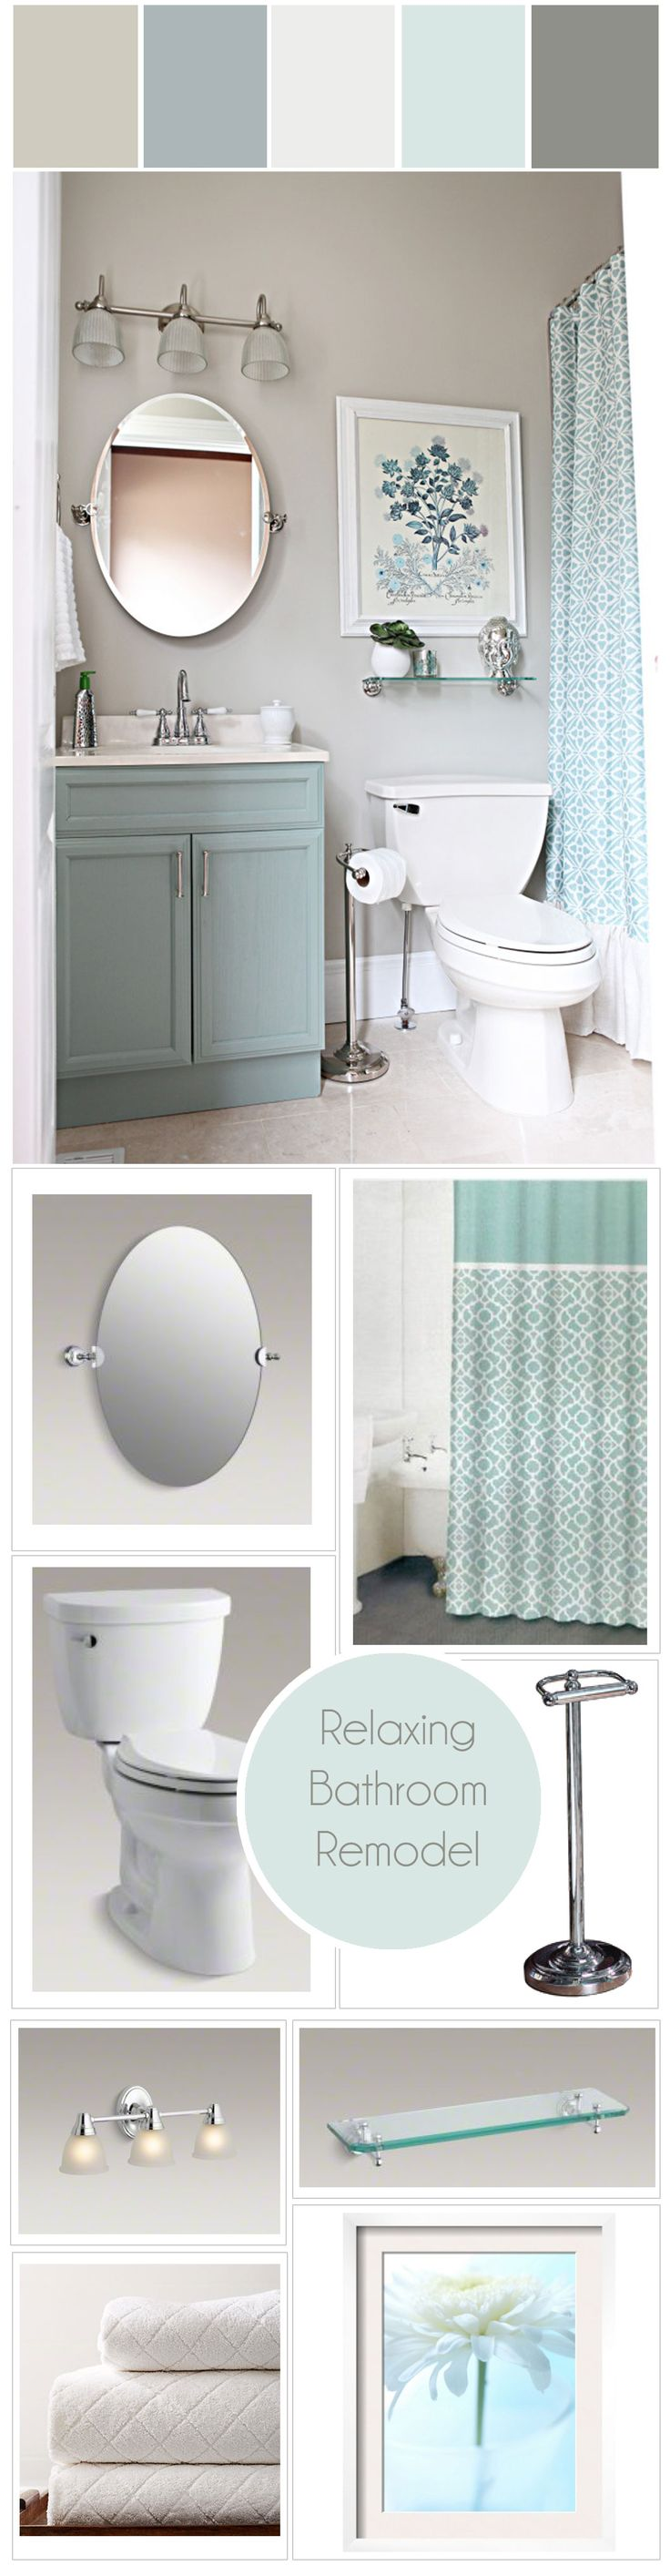 top 25 best small bathroom colors ideas on pinterest guest canada s got colour winner relaxing bathroom makeover colour stylyze generalpaint